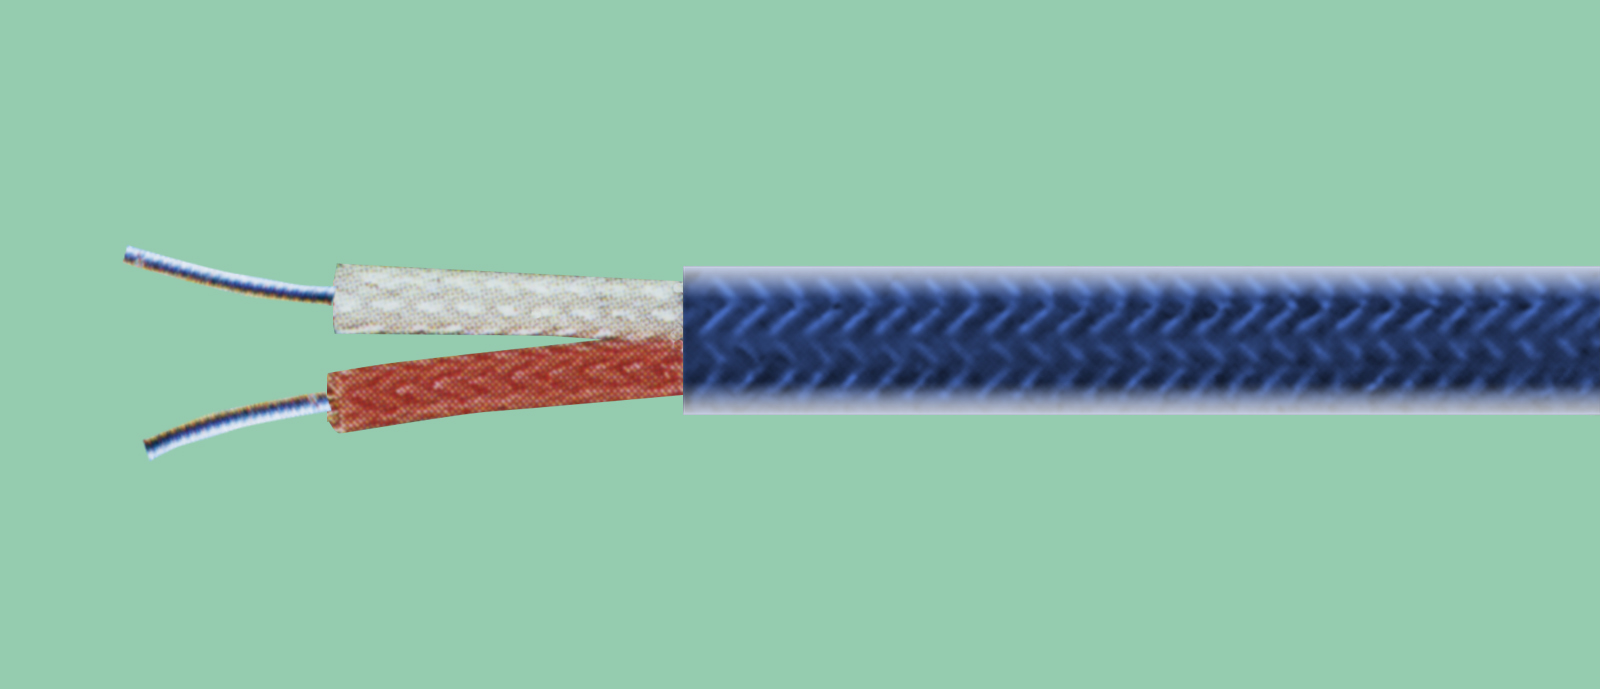 Insulated Thermocouple | TOKYO WIRE WORKS, LTD.